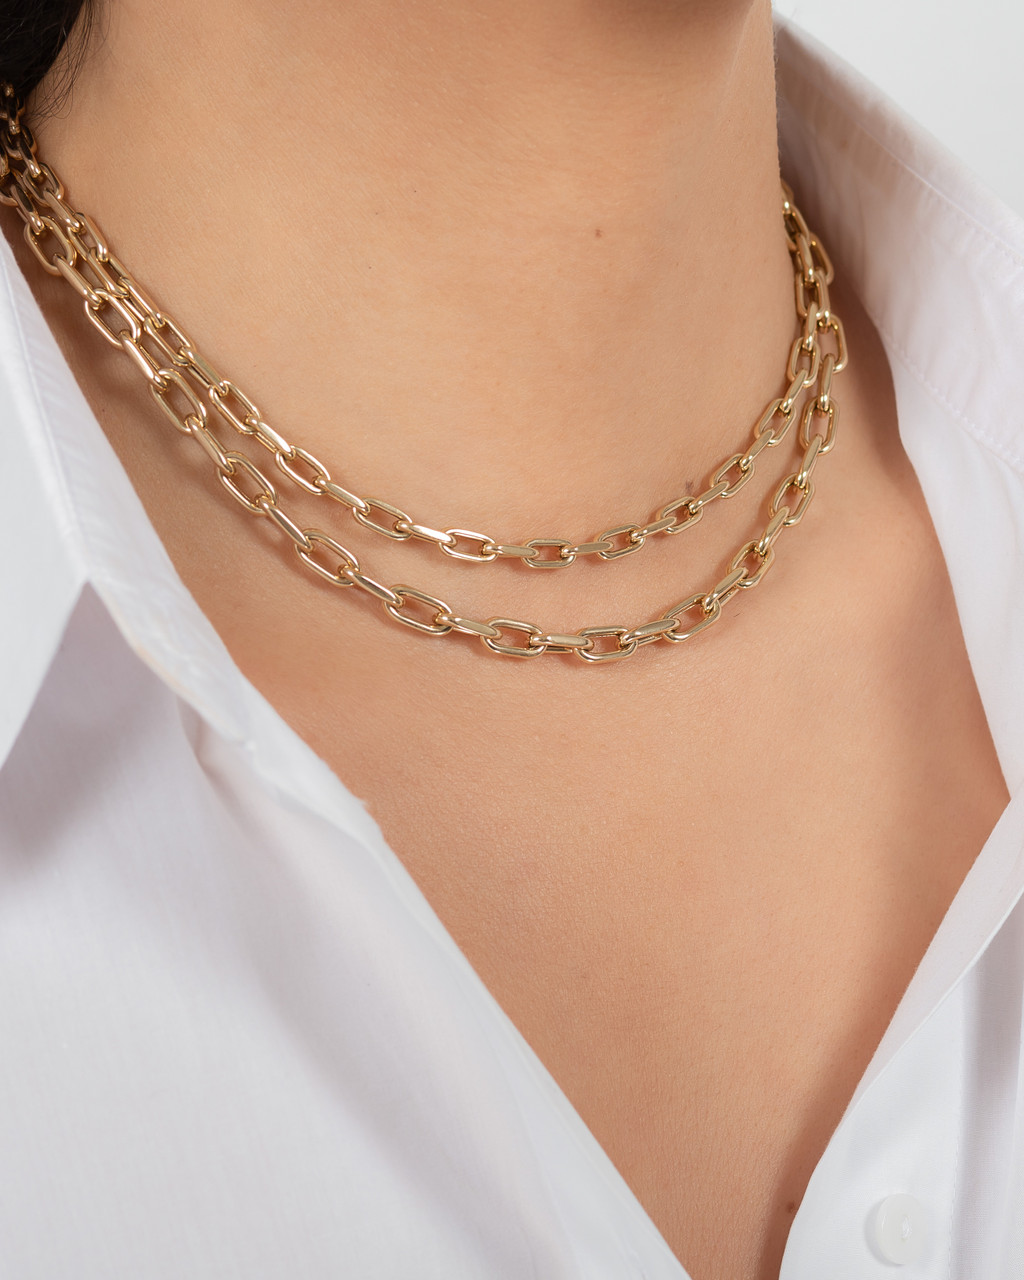 14k Gold Large Open Link Chain Necklace